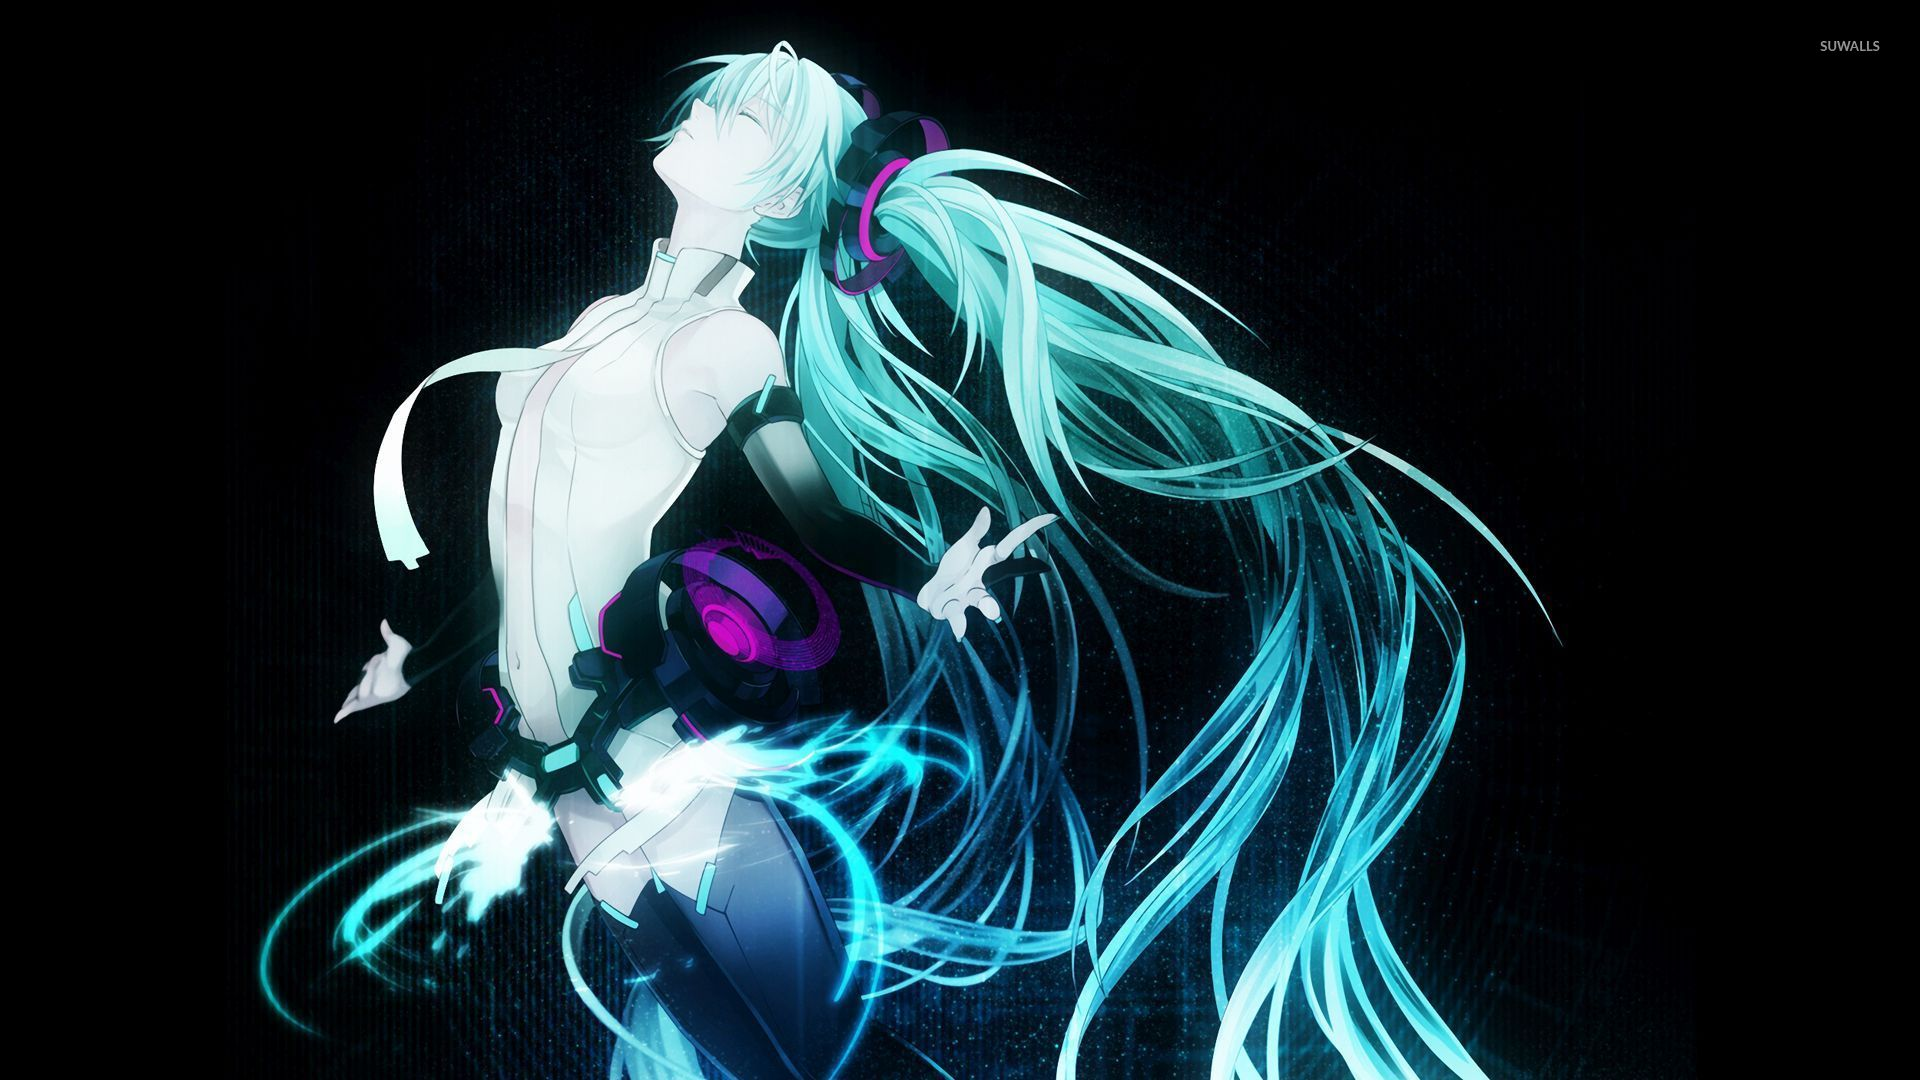 Flying Hatsune Miku in Vocaloid wallpaper